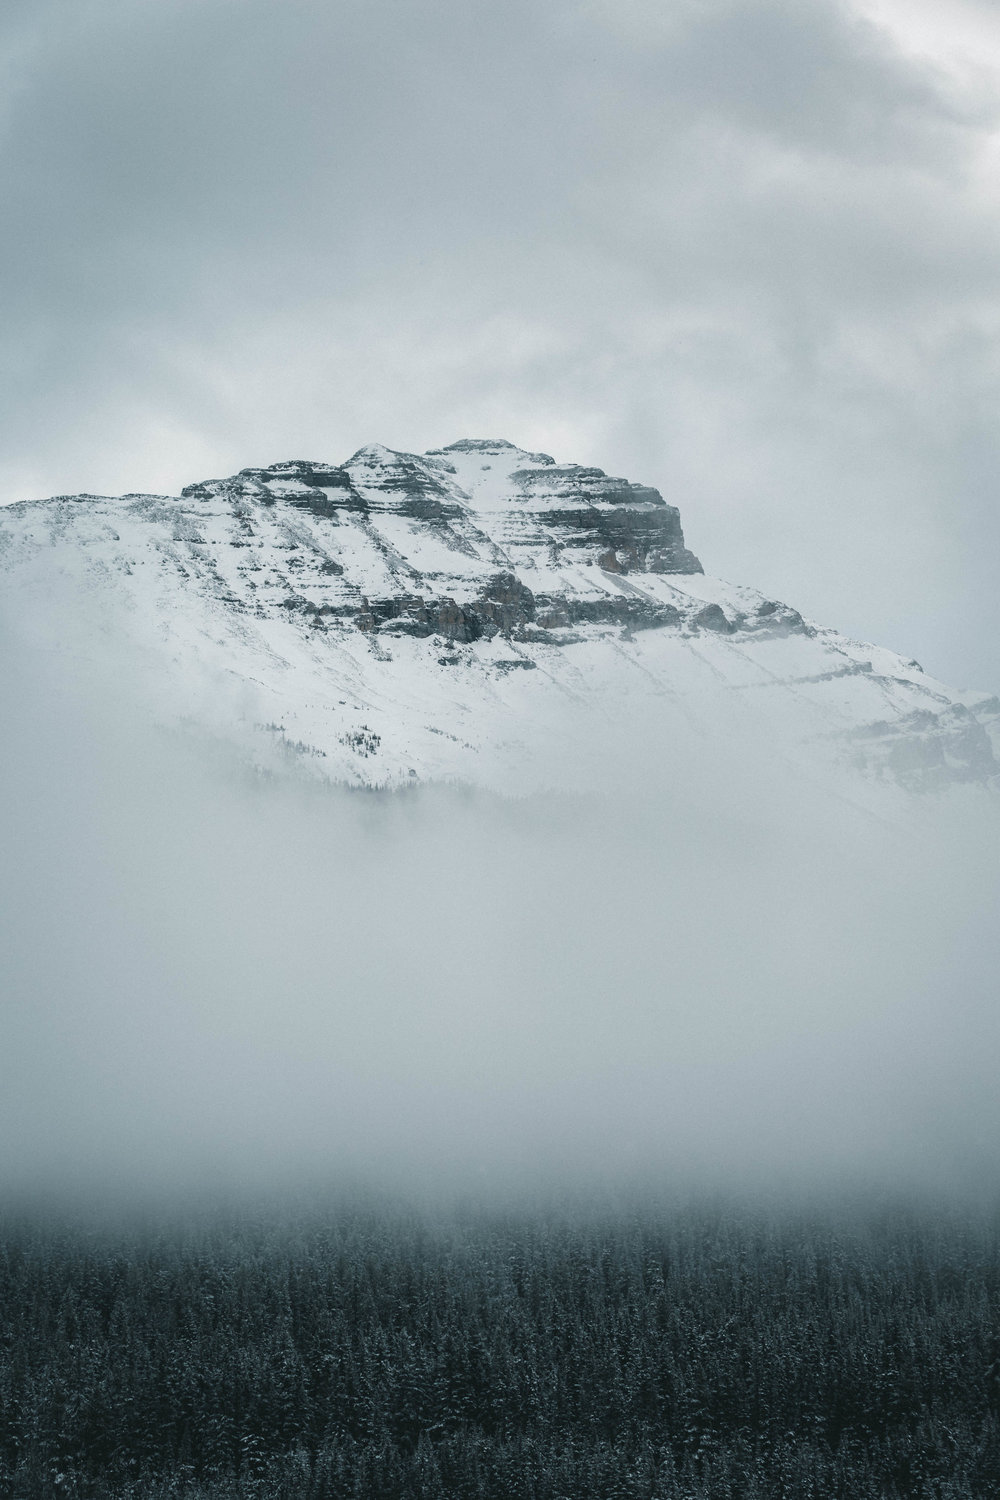 14 | Rising from the fog - Going up the mountain between Banff and Yoho, I was welcomed by snowy forests and peaks. I stopped on the side of the road in a closed parking lot to grab a shot of the side of the mountain with snowy trees coming out of the fog. I did take that shot. But a minute later, the fog cleared out for a brief instant, revealing the peak. I shot again. Few instants later, the peak went hiding back in the fog. Canadian Rockies, October 2018.